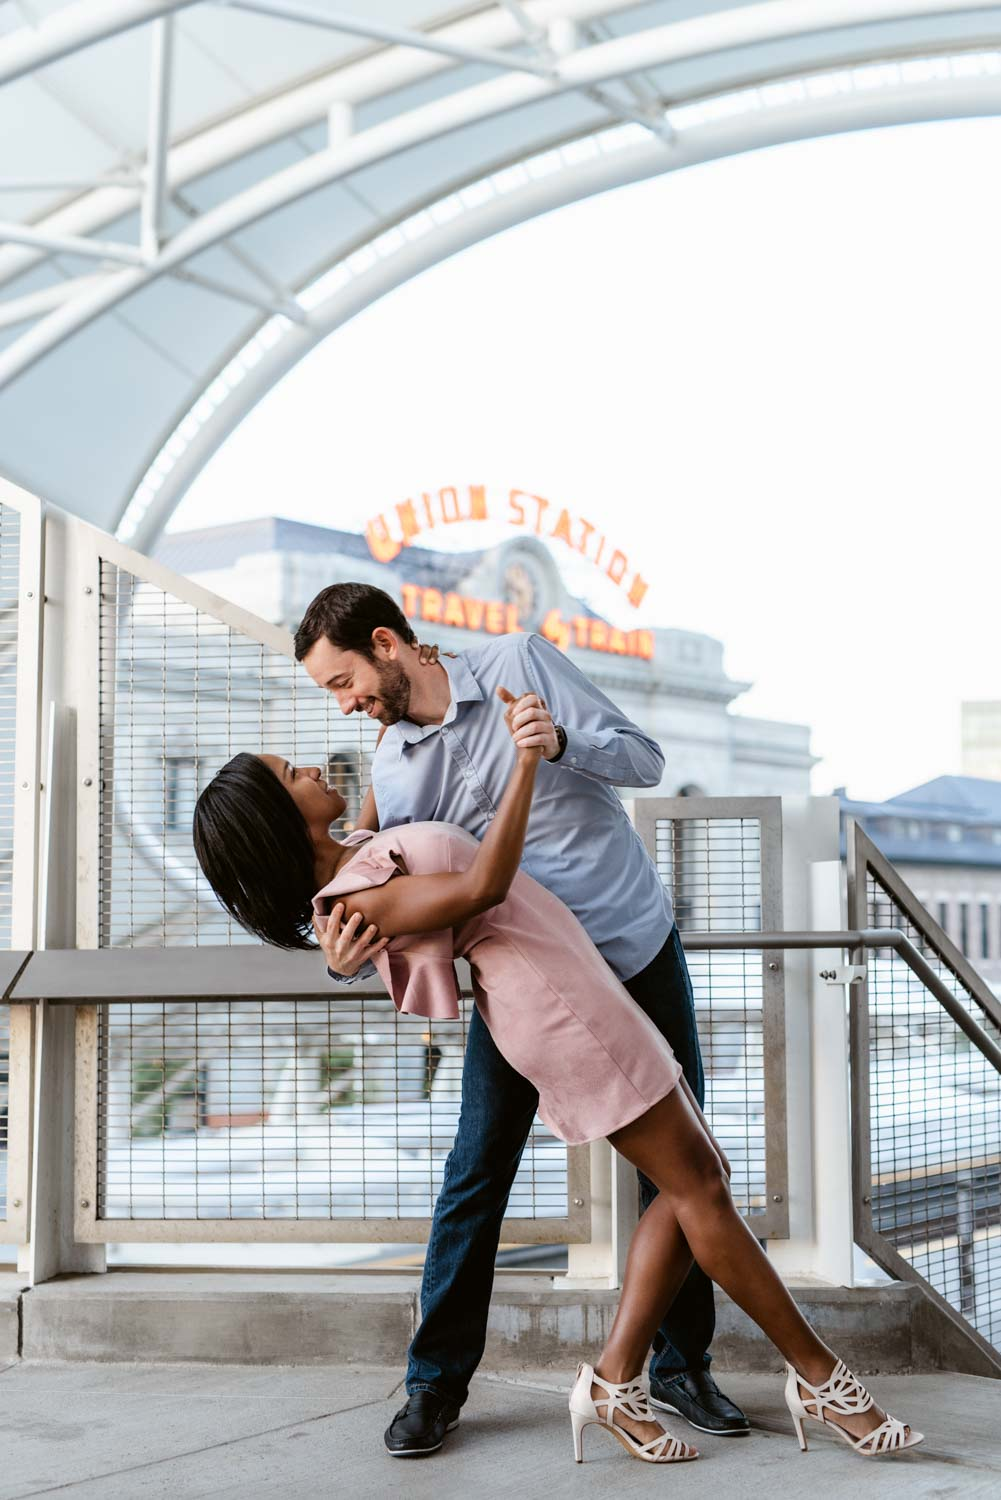 Newly engaged couple dips in front of the Union Station sign at Denver's Union Station downtown. Union Station is one of the best spots in Denver to take photographs because of its cool architecture and unique downtown.